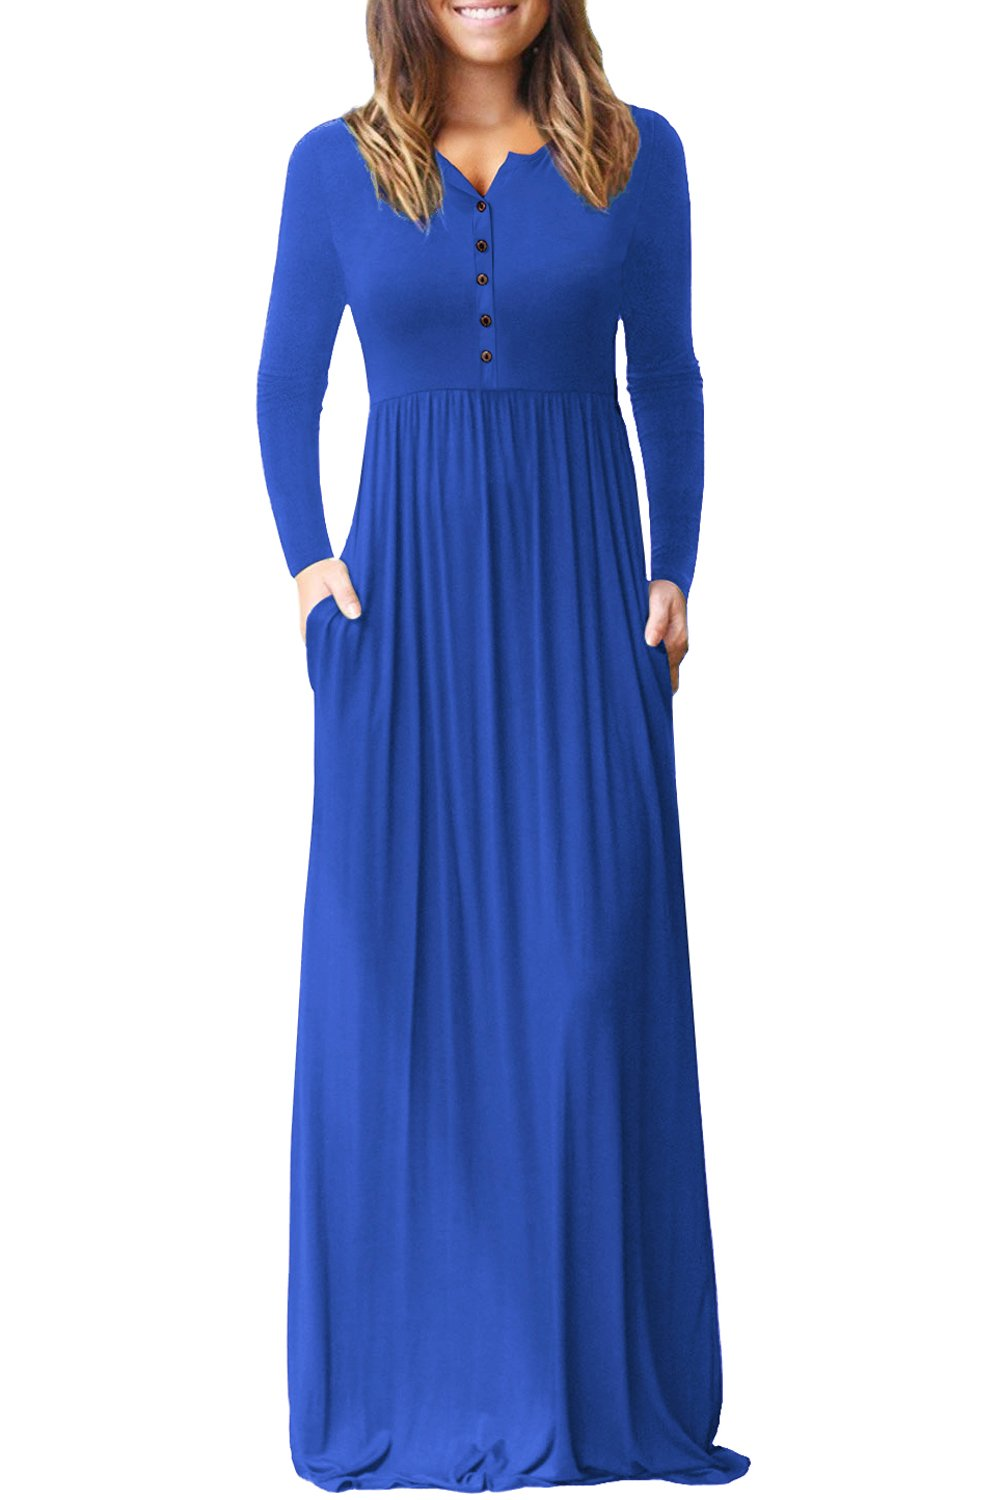 Royal blue long sleeve button down casual maxi dress products